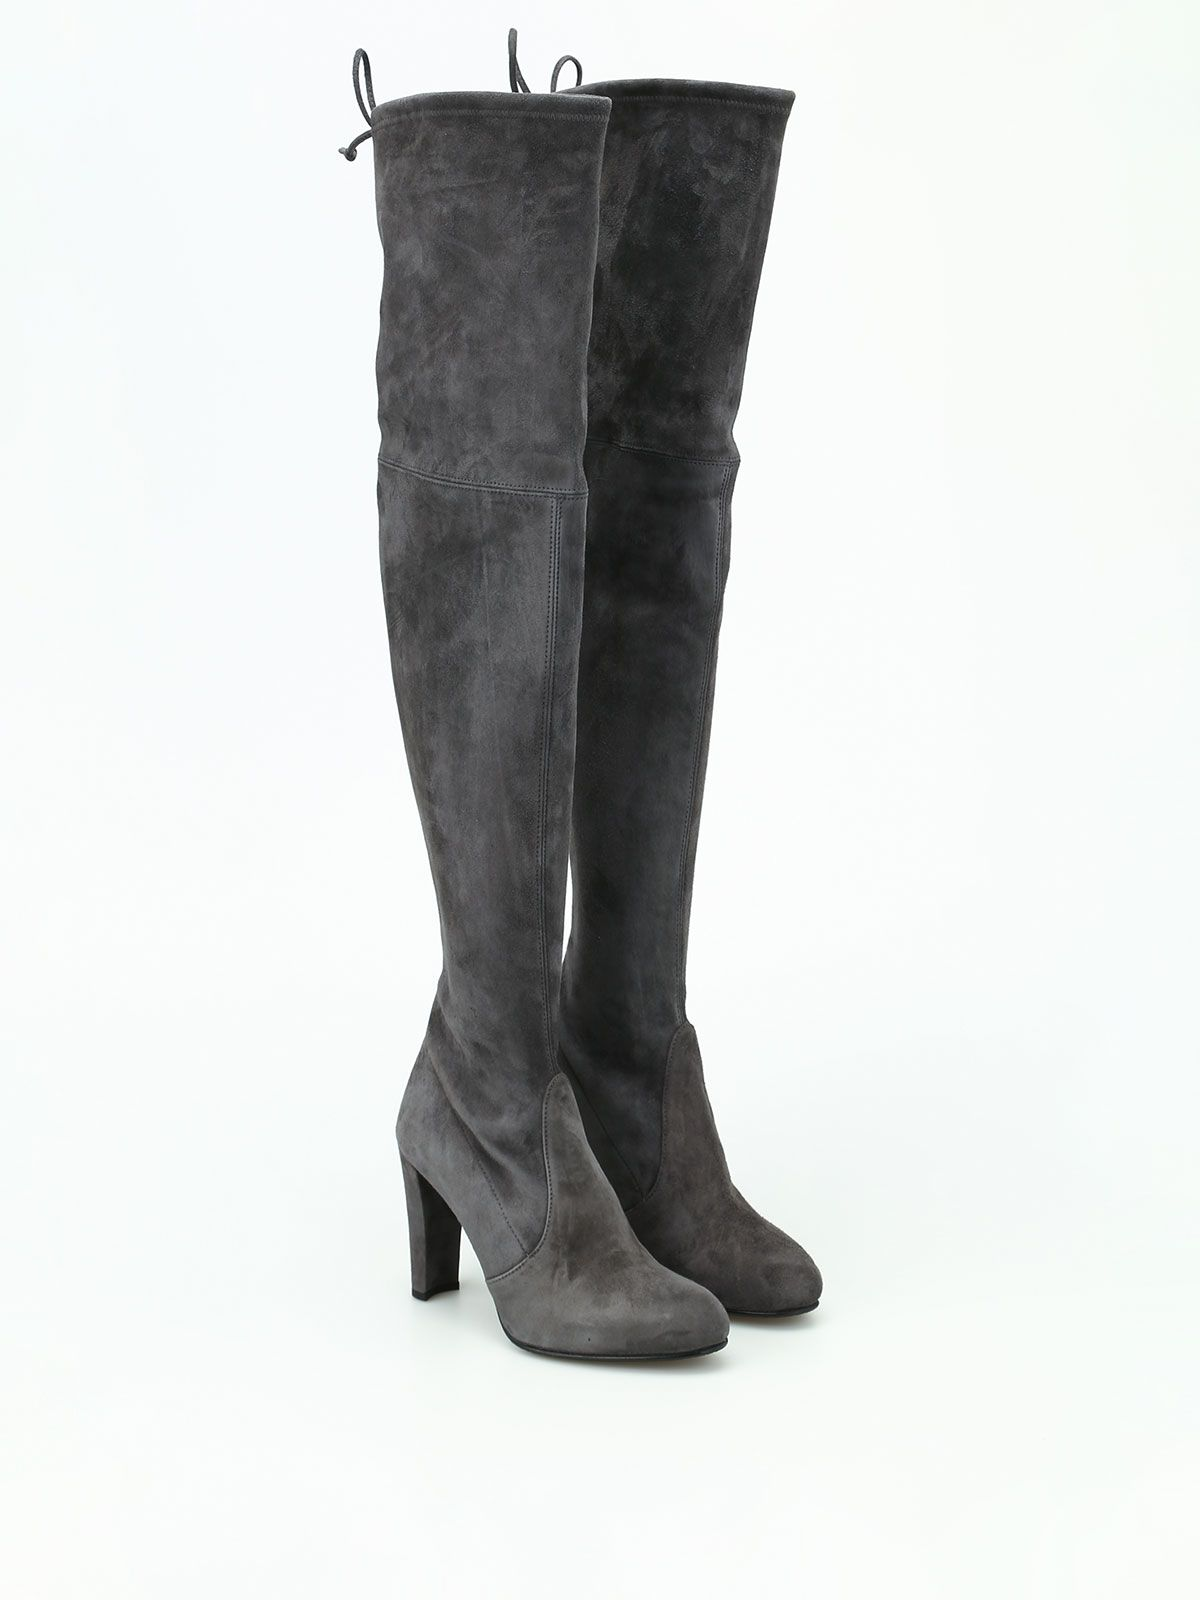 Highland Over-the-knee Suede Boots